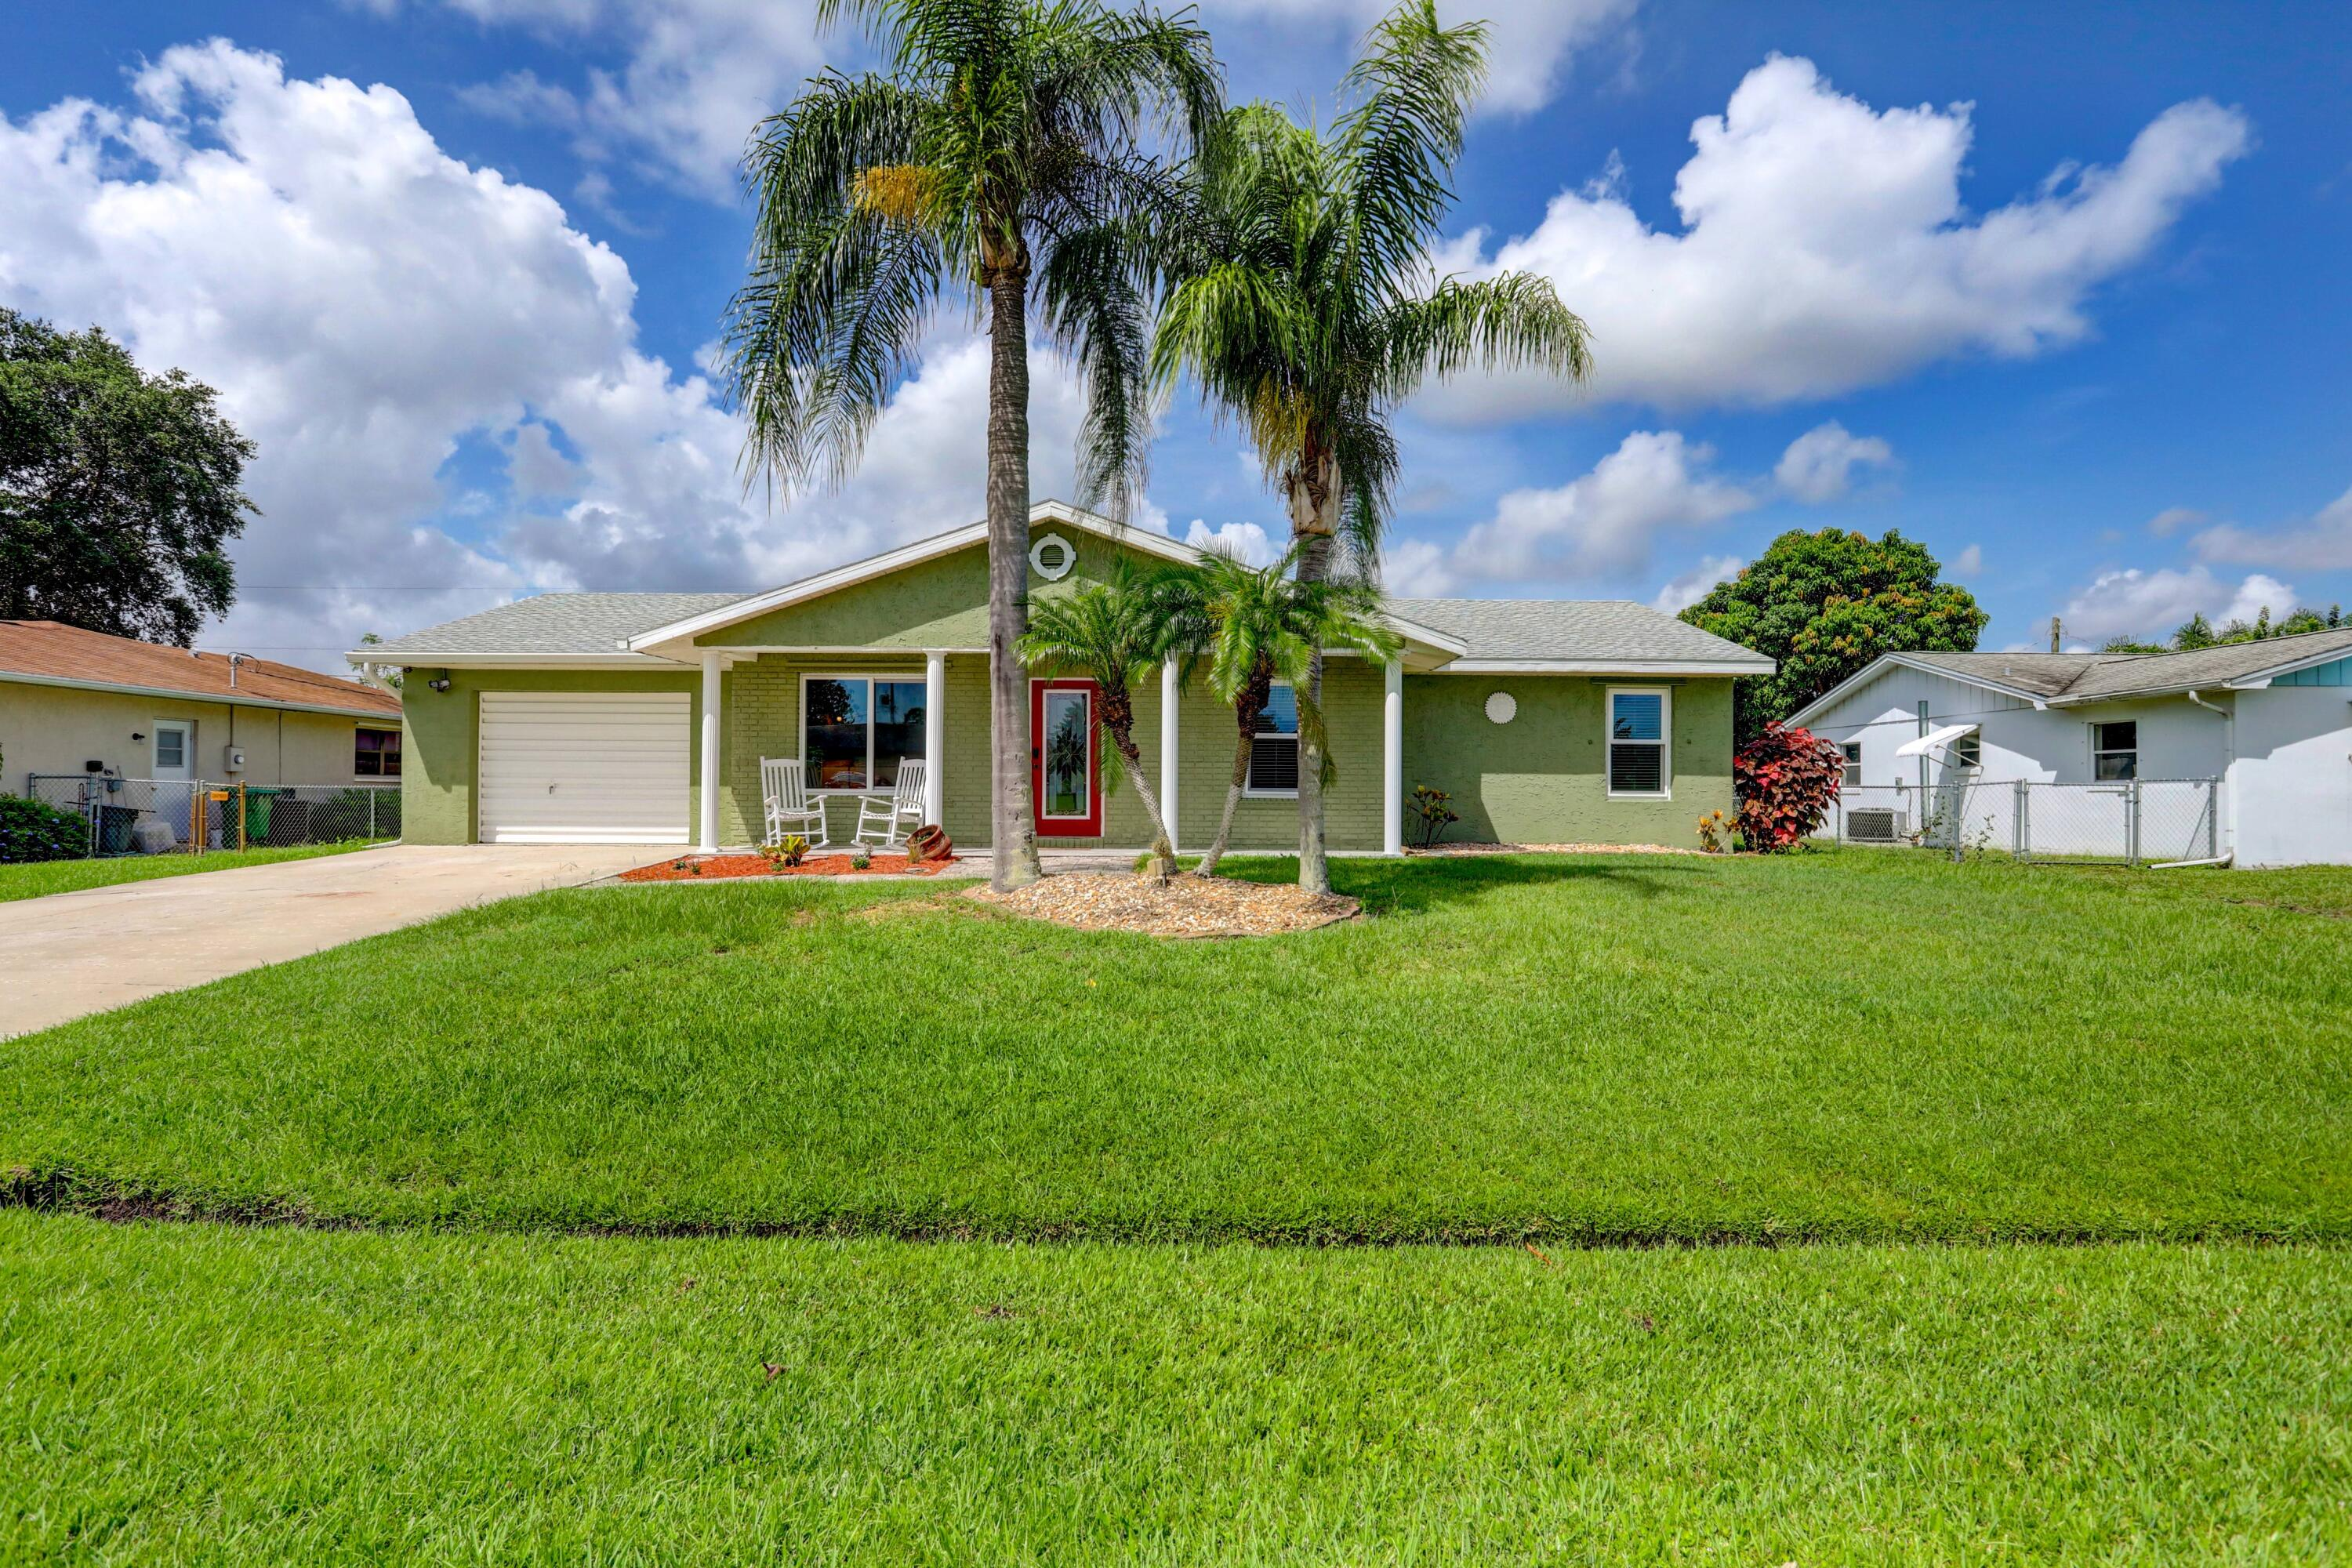 Beautiful 4/3 saltwater pool home with twin master suites, huge kitchen for entertaining, new roof 2019, 2 new A/C units 2017, new eco friendly solar panels (avg monthly electric bill $20), new impact windows, huge enclosed patio, security system, security lighting, all new high end appliances and a whole home generator plug in garage professionally wired to panel.  New master added to home with walk-in shower and California closet.  Must see home with driveway that fits 6 cars.